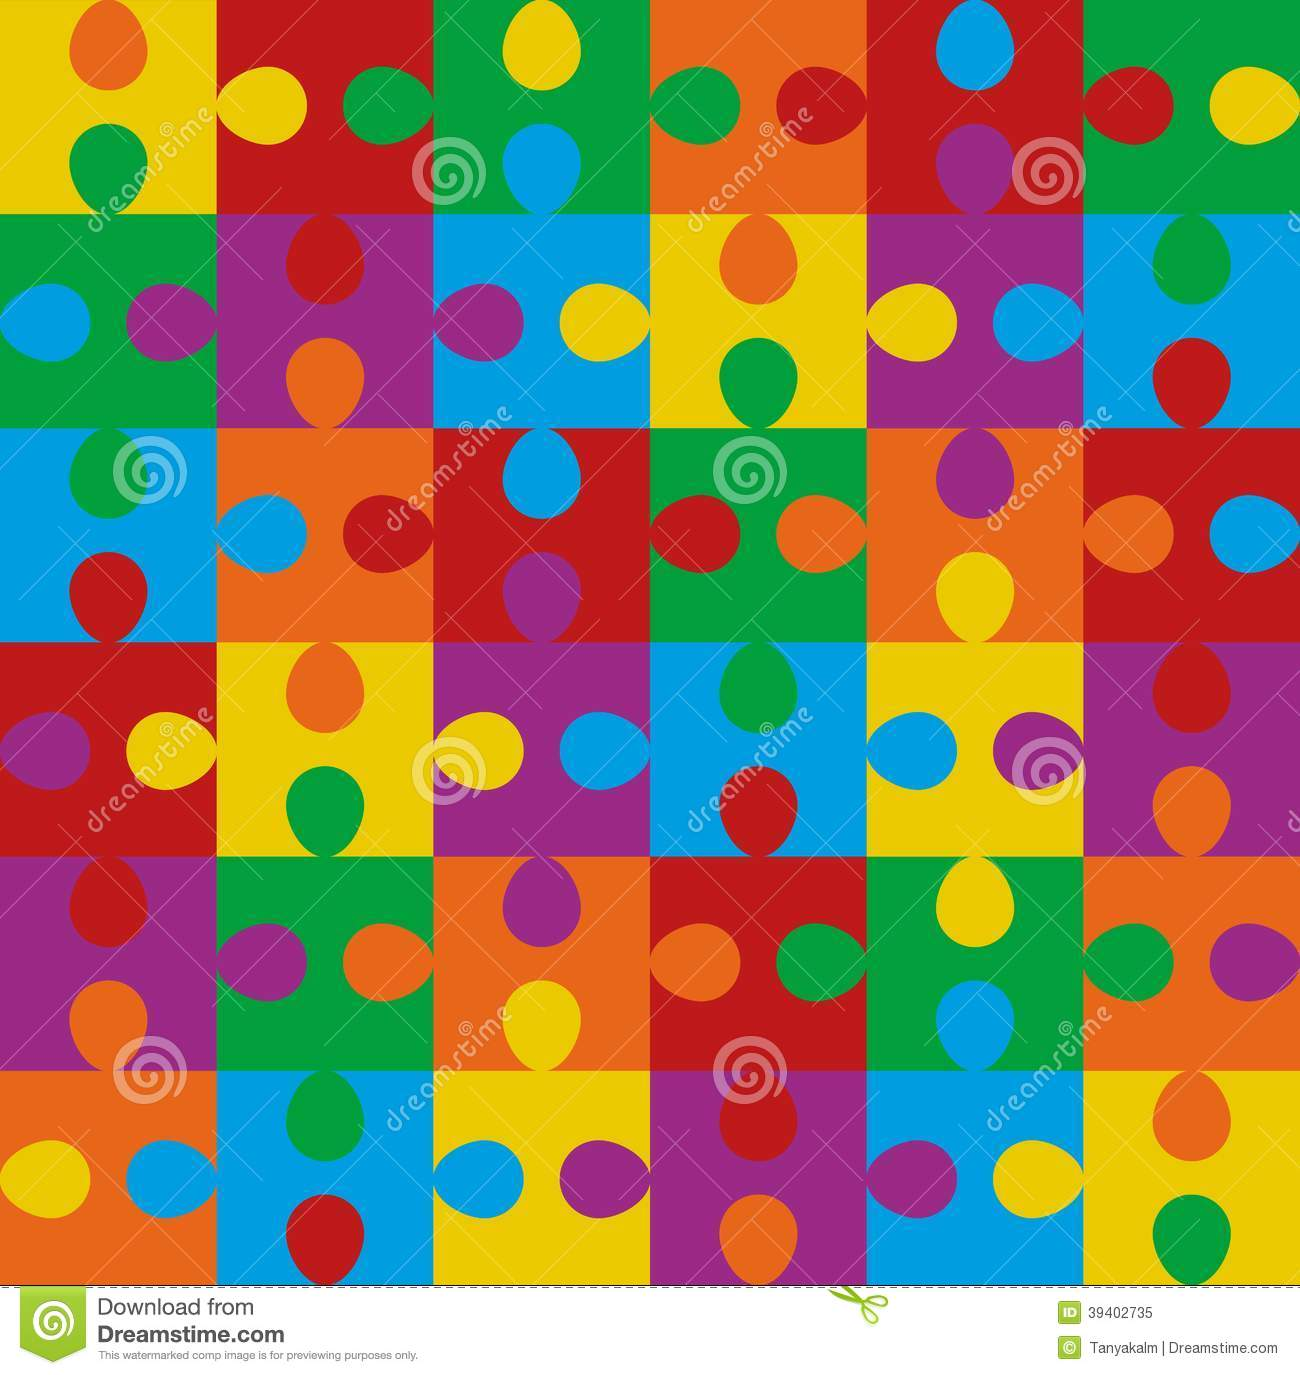 Puzzle Seamless Pattern Stock Vector - Image: 39402735